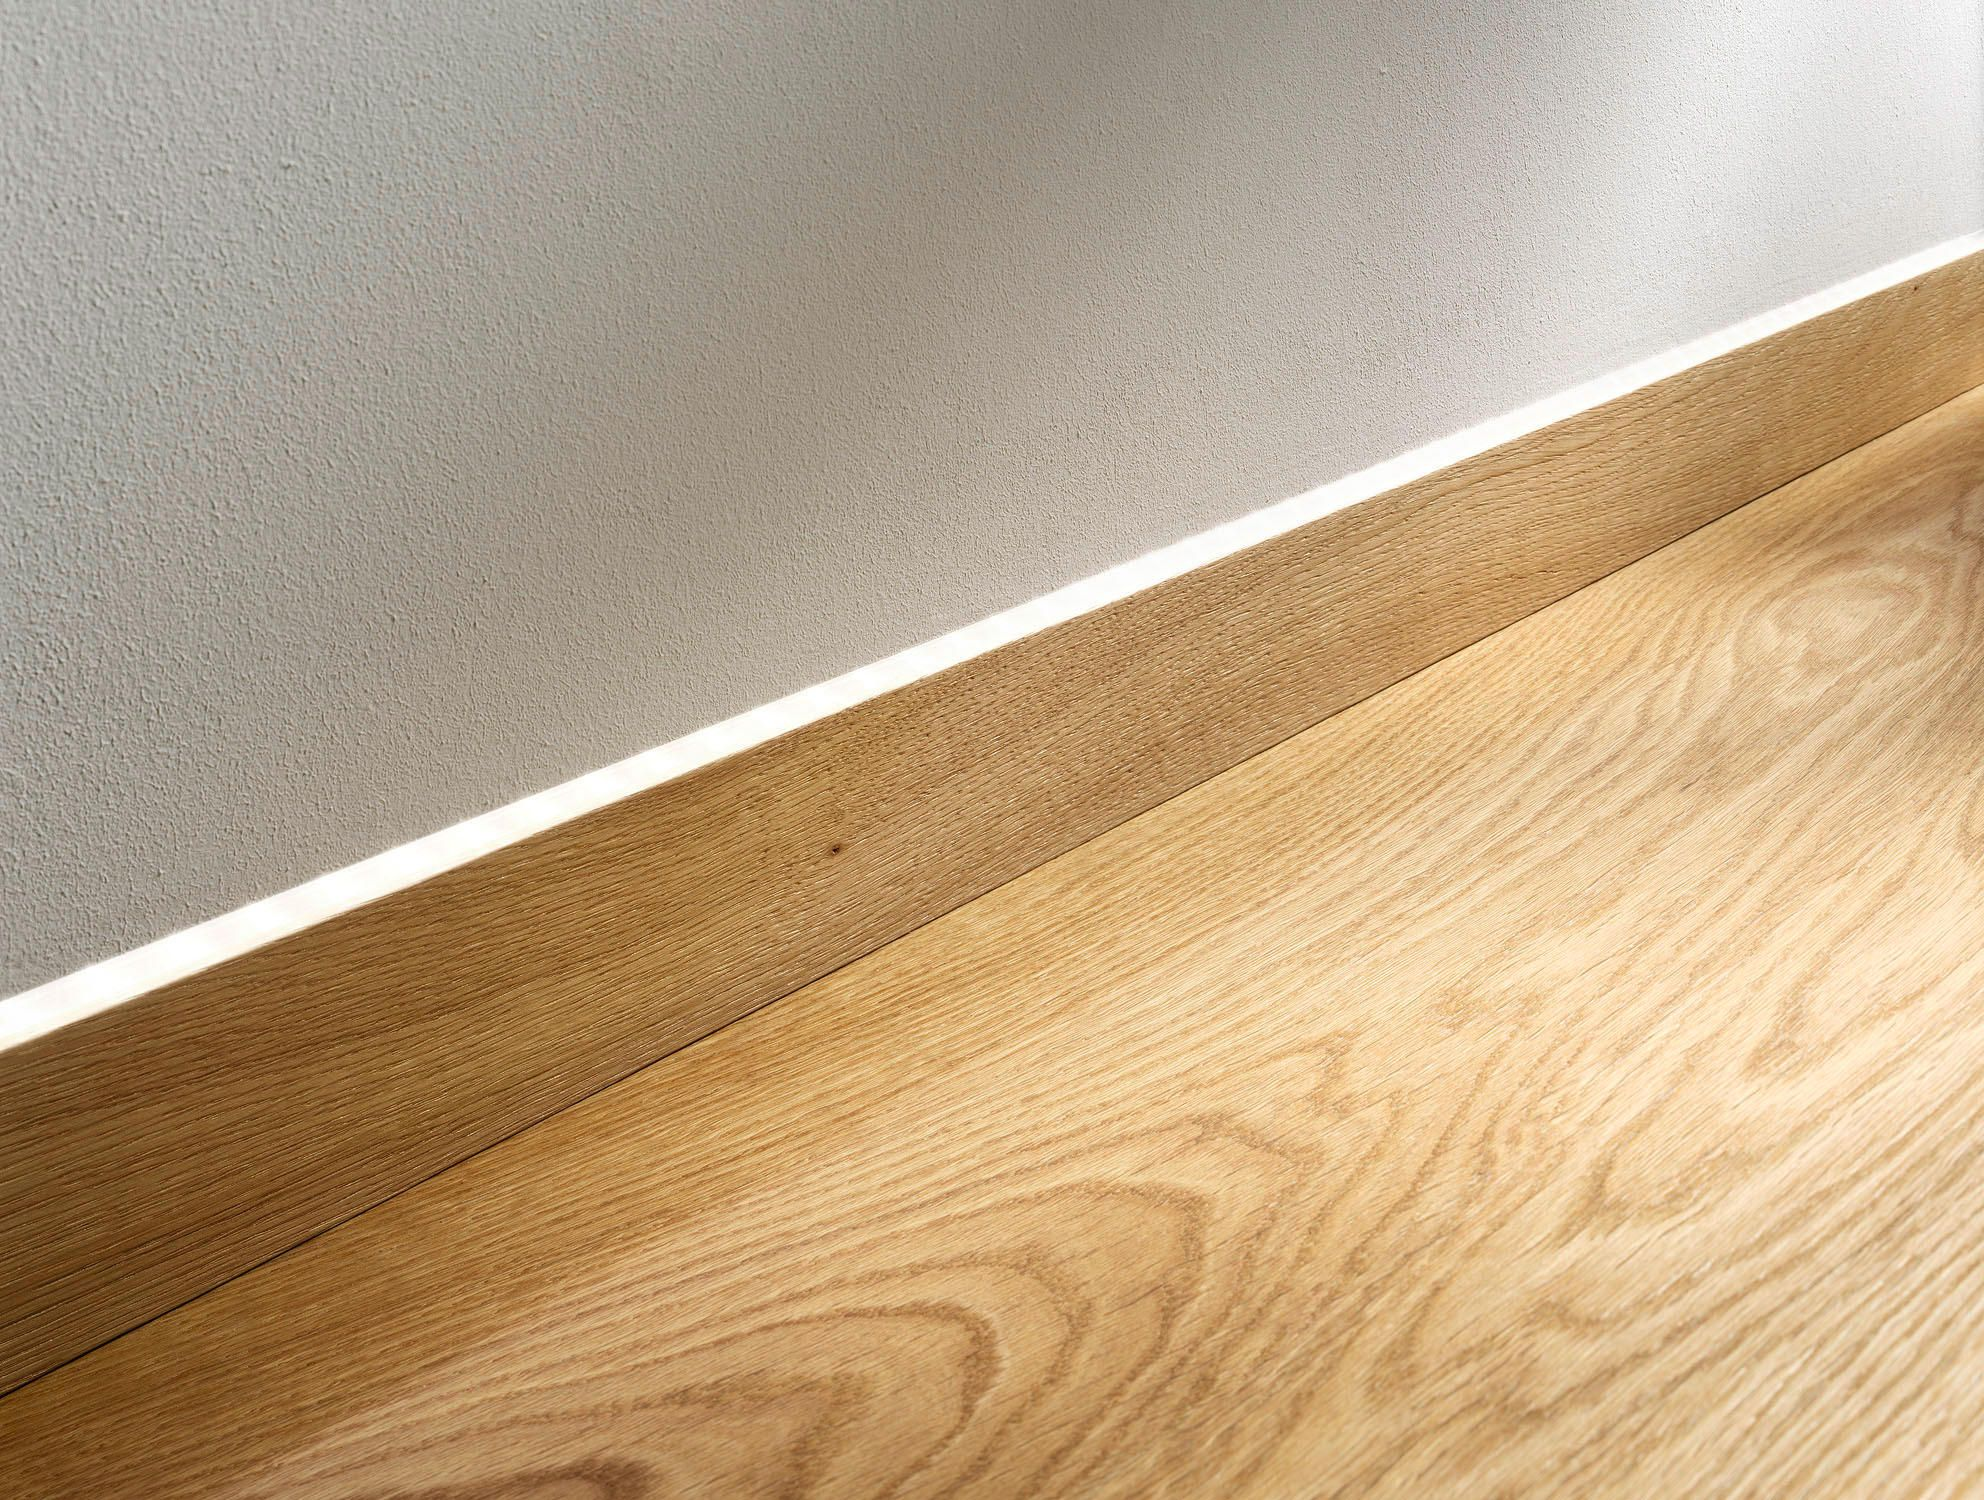 Flush mount skirting board with led by admonter baseboards